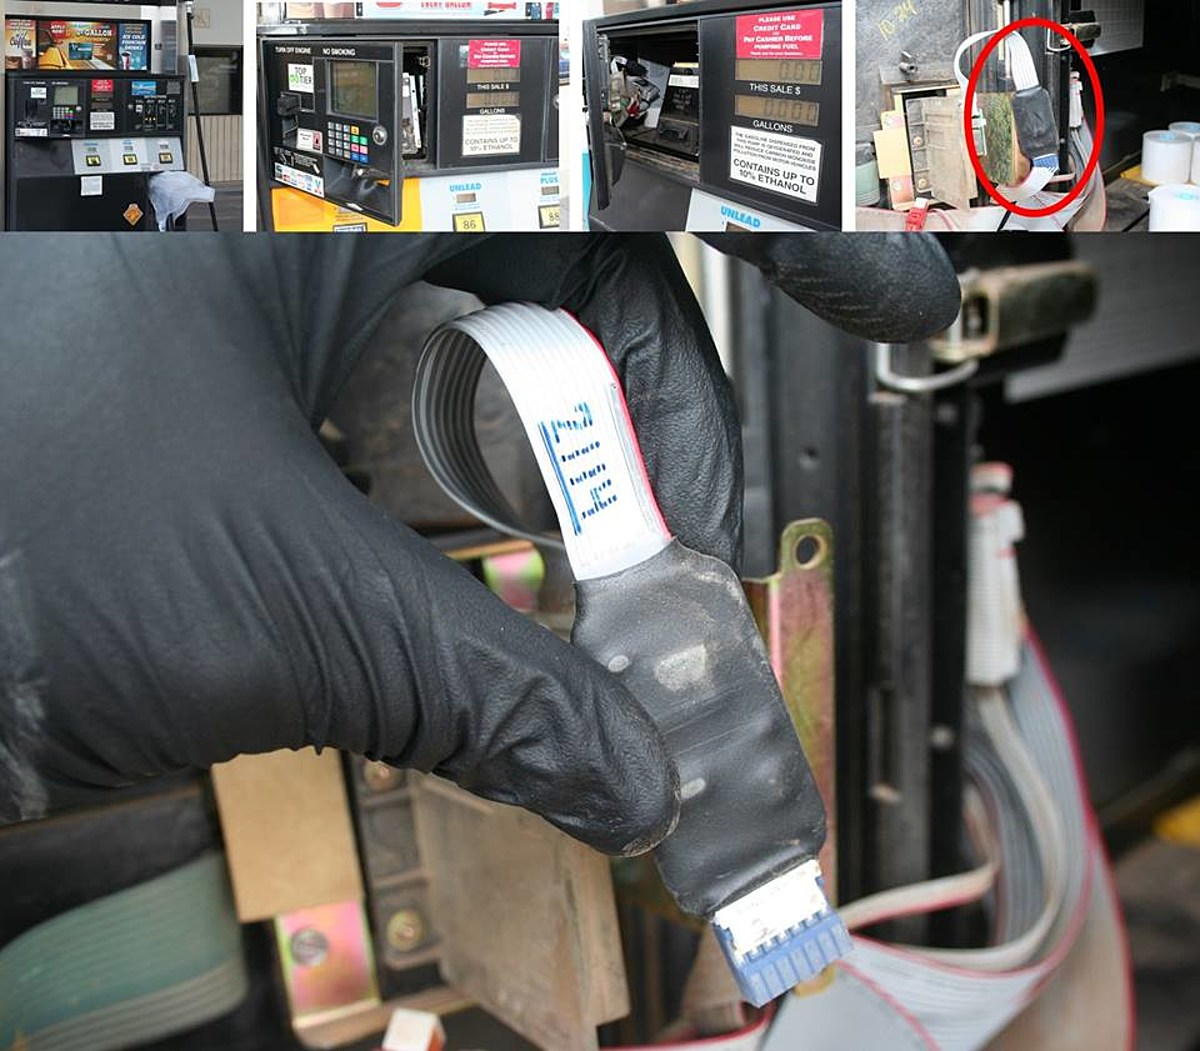 Lubbock Police Discover Credit Card Skimmers At Gas Station